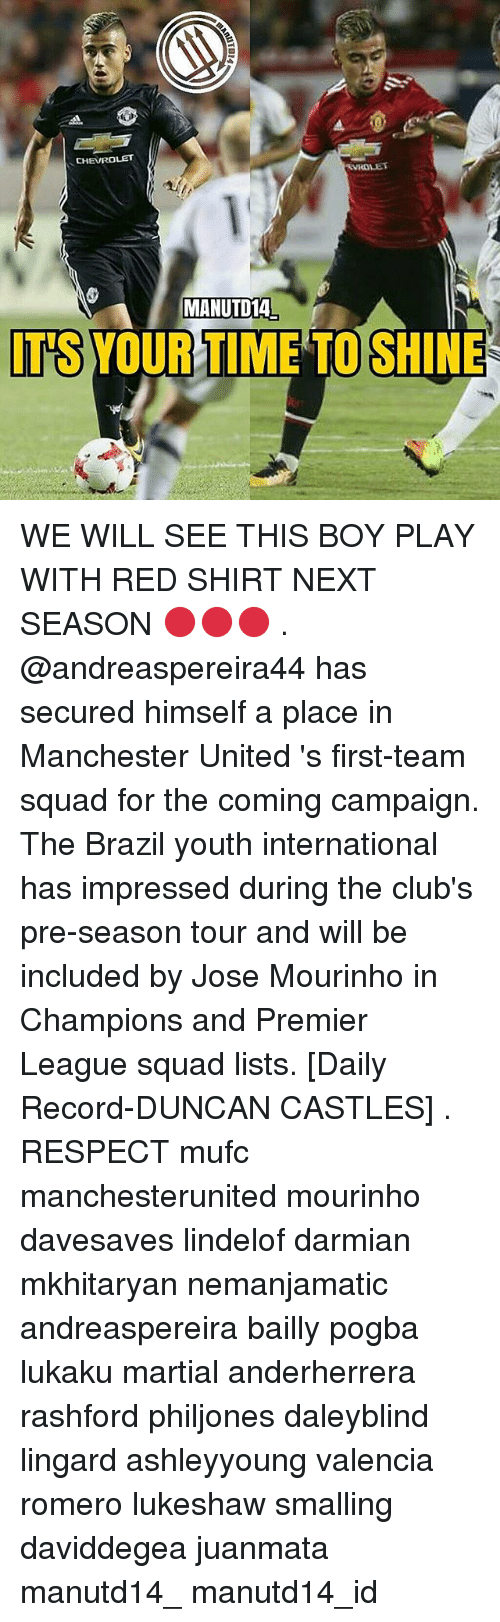 Memes, Premier League, and Respect: CHEVROLET  VROLET  MANUTD14  IT'S YOUR TIME TO SHINE WE WILL SEE THIS BOY PLAY WITH RED SHIRT NEXT SEASON 🔴🔴🔴 . @andreaspereira44 has secured himself a place in Manchester United 's first-team squad for the coming campaign. The Brazil youth international has impressed during the club's pre-season tour and will be included by Jose Mourinho in Champions and Premier League squad lists. [Daily Record-DUNCAN CASTLES] . RESPECT mufc manchesterunited mourinho davesaves lindelof darmian mkhitaryan nemanjamatic andreaspereira bailly pogba lukaku martial anderherrera rashford philjones daleyblind lingard ashleyyoung valencia romero lukeshaw smalling daviddegea juanmata manutd14_ manutd14_id